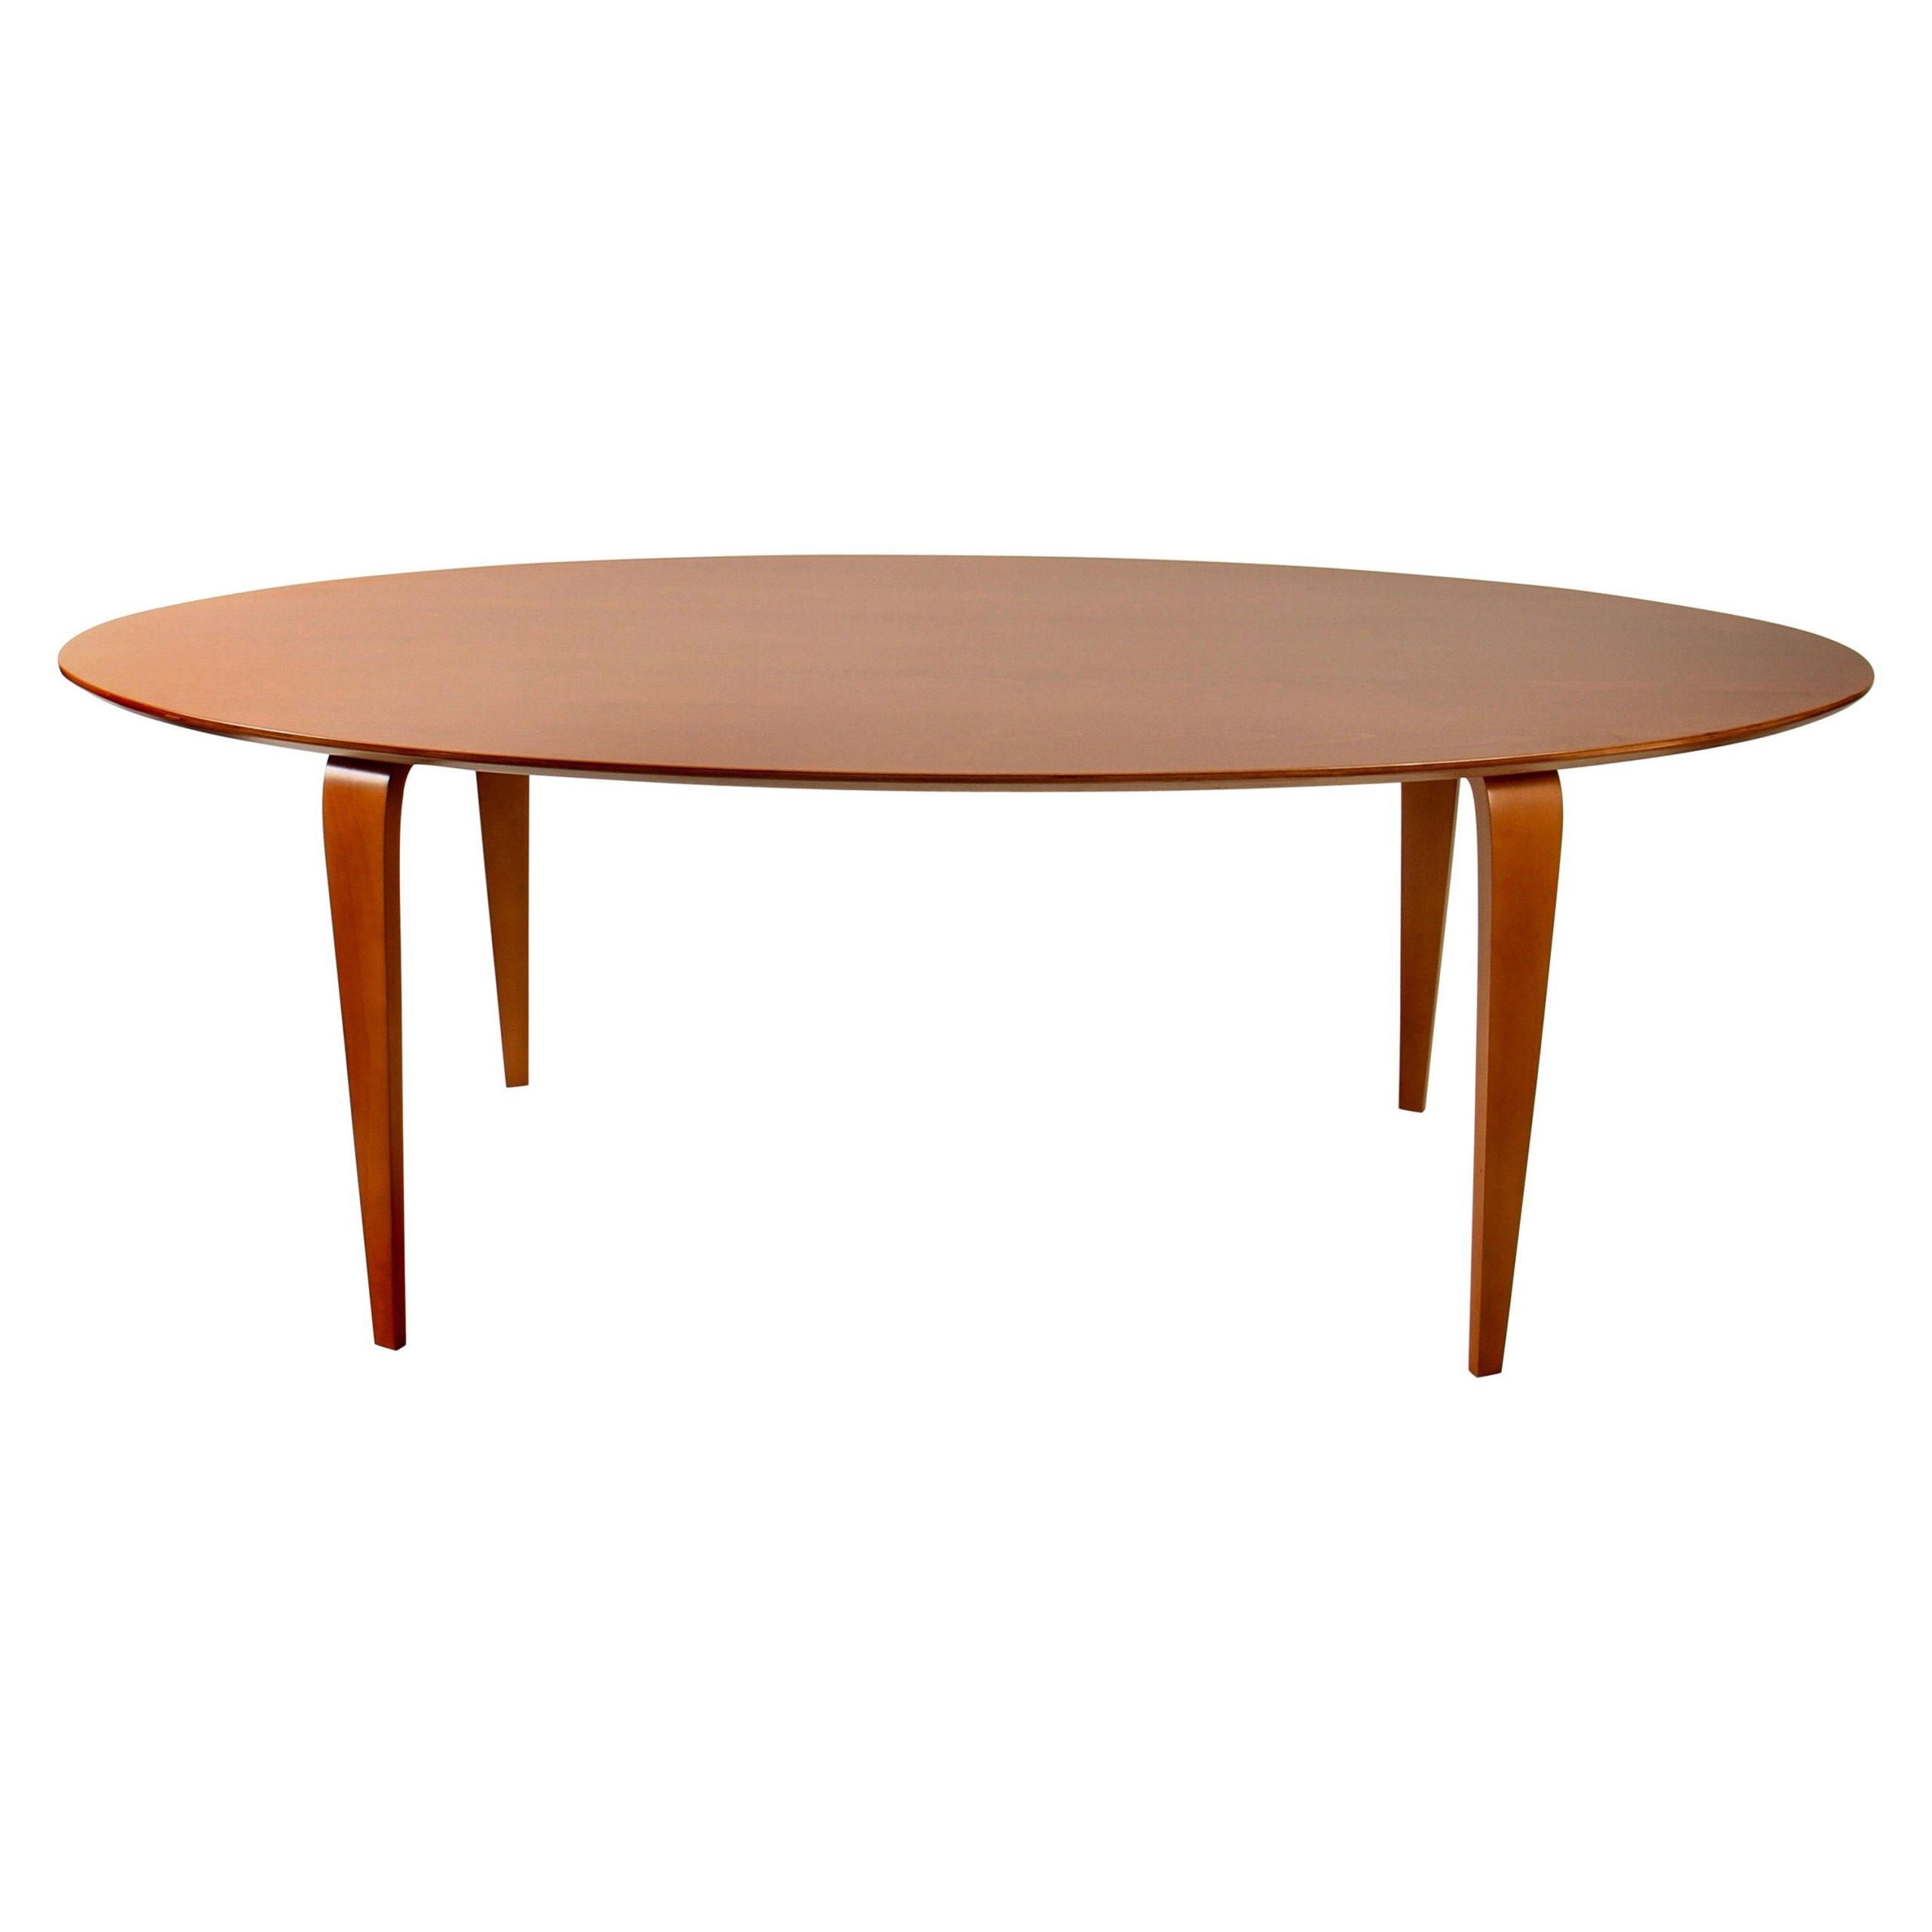 Reed Extending Dining Tables intended for Well known Oval Dining Table And Chairs - 96 For Sale On 1Stdibs